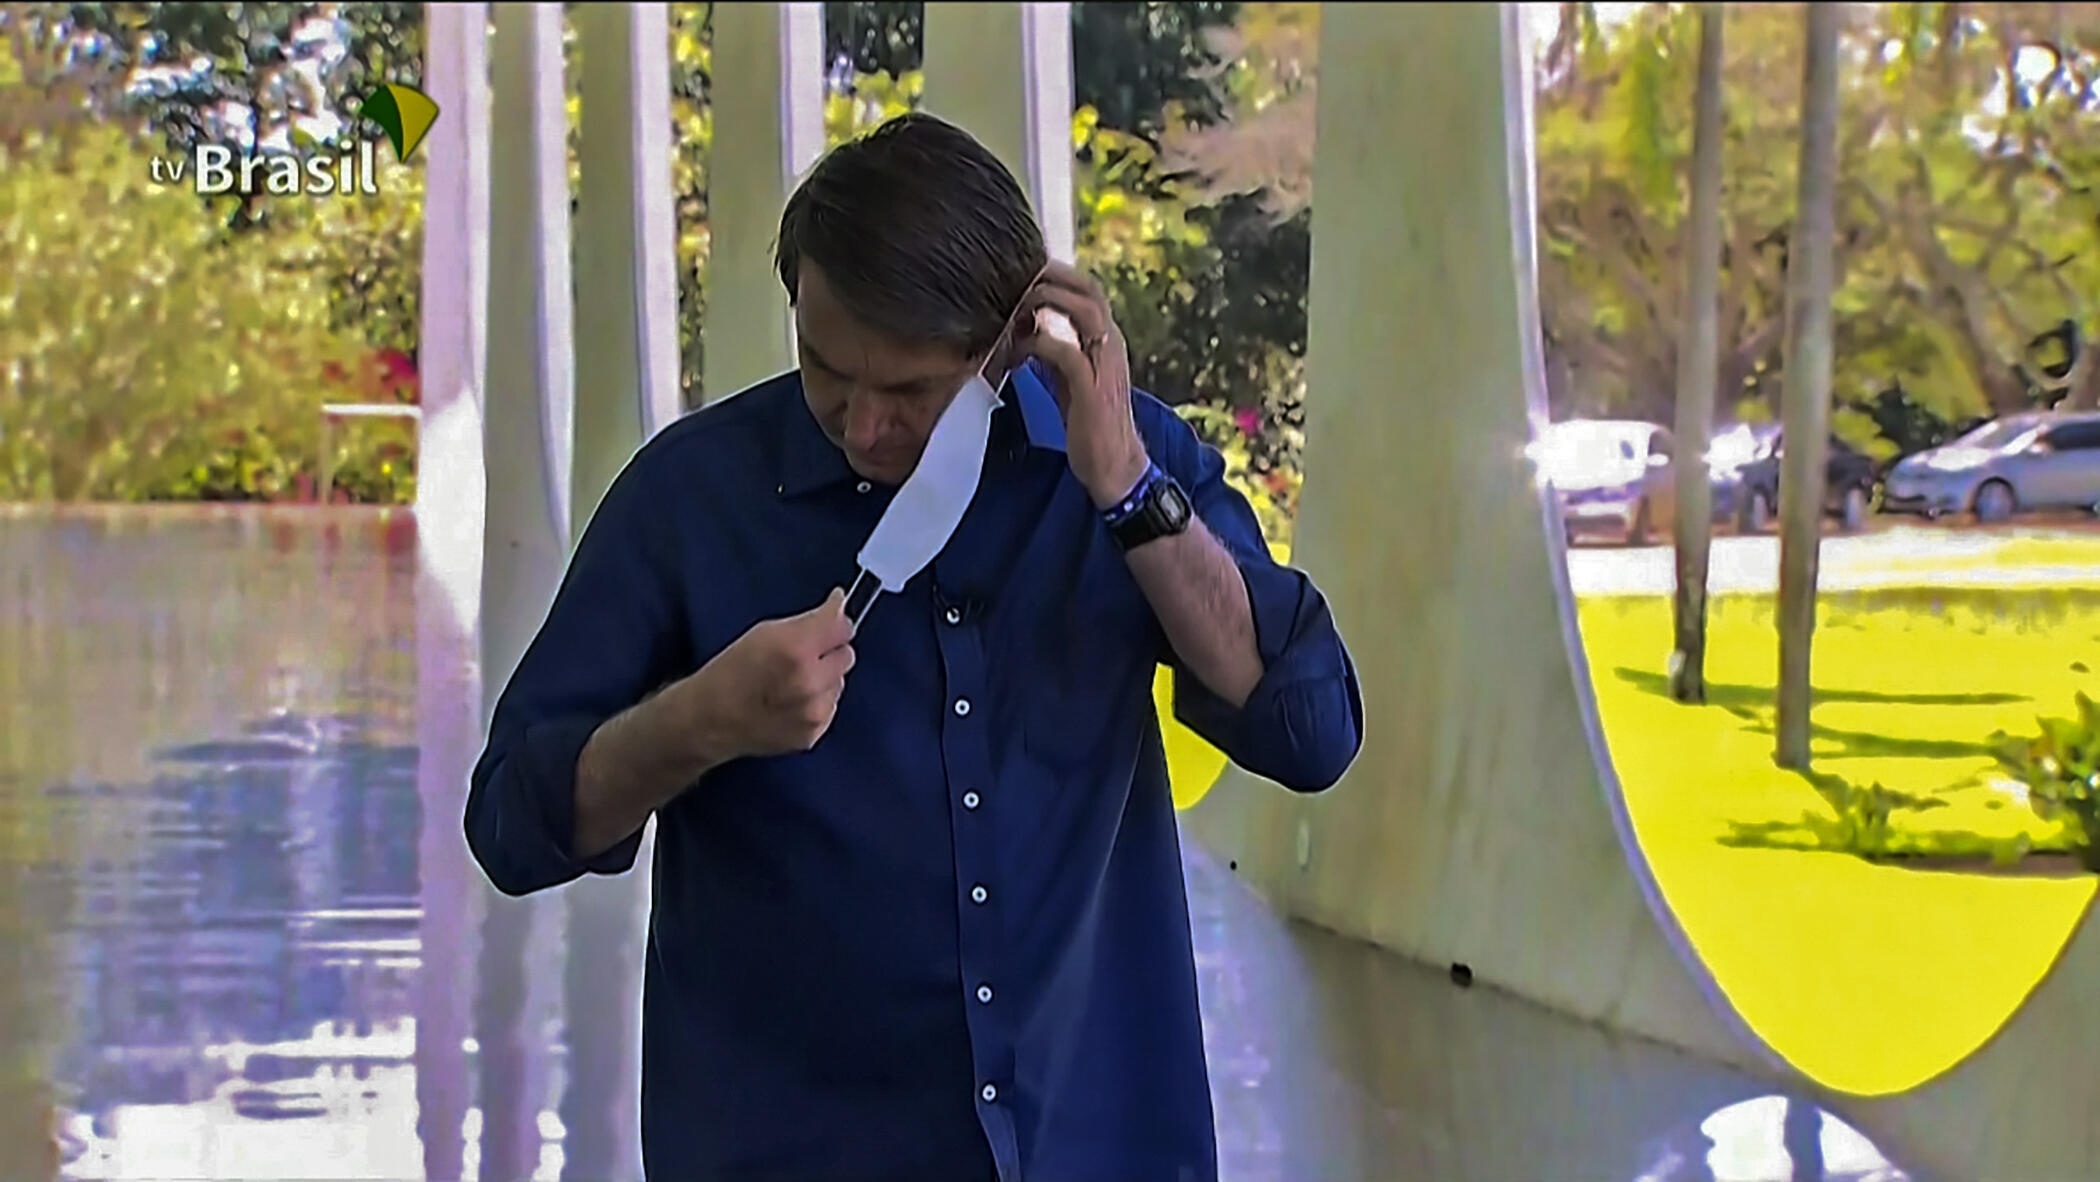 A screen grab from TV Brasil shows Brazilian President Jair Bolsonaro putting a face mask on as he prepares to speak with journalists at Planalto Palace in Brasilia on July 7, 2020. He later removed it.